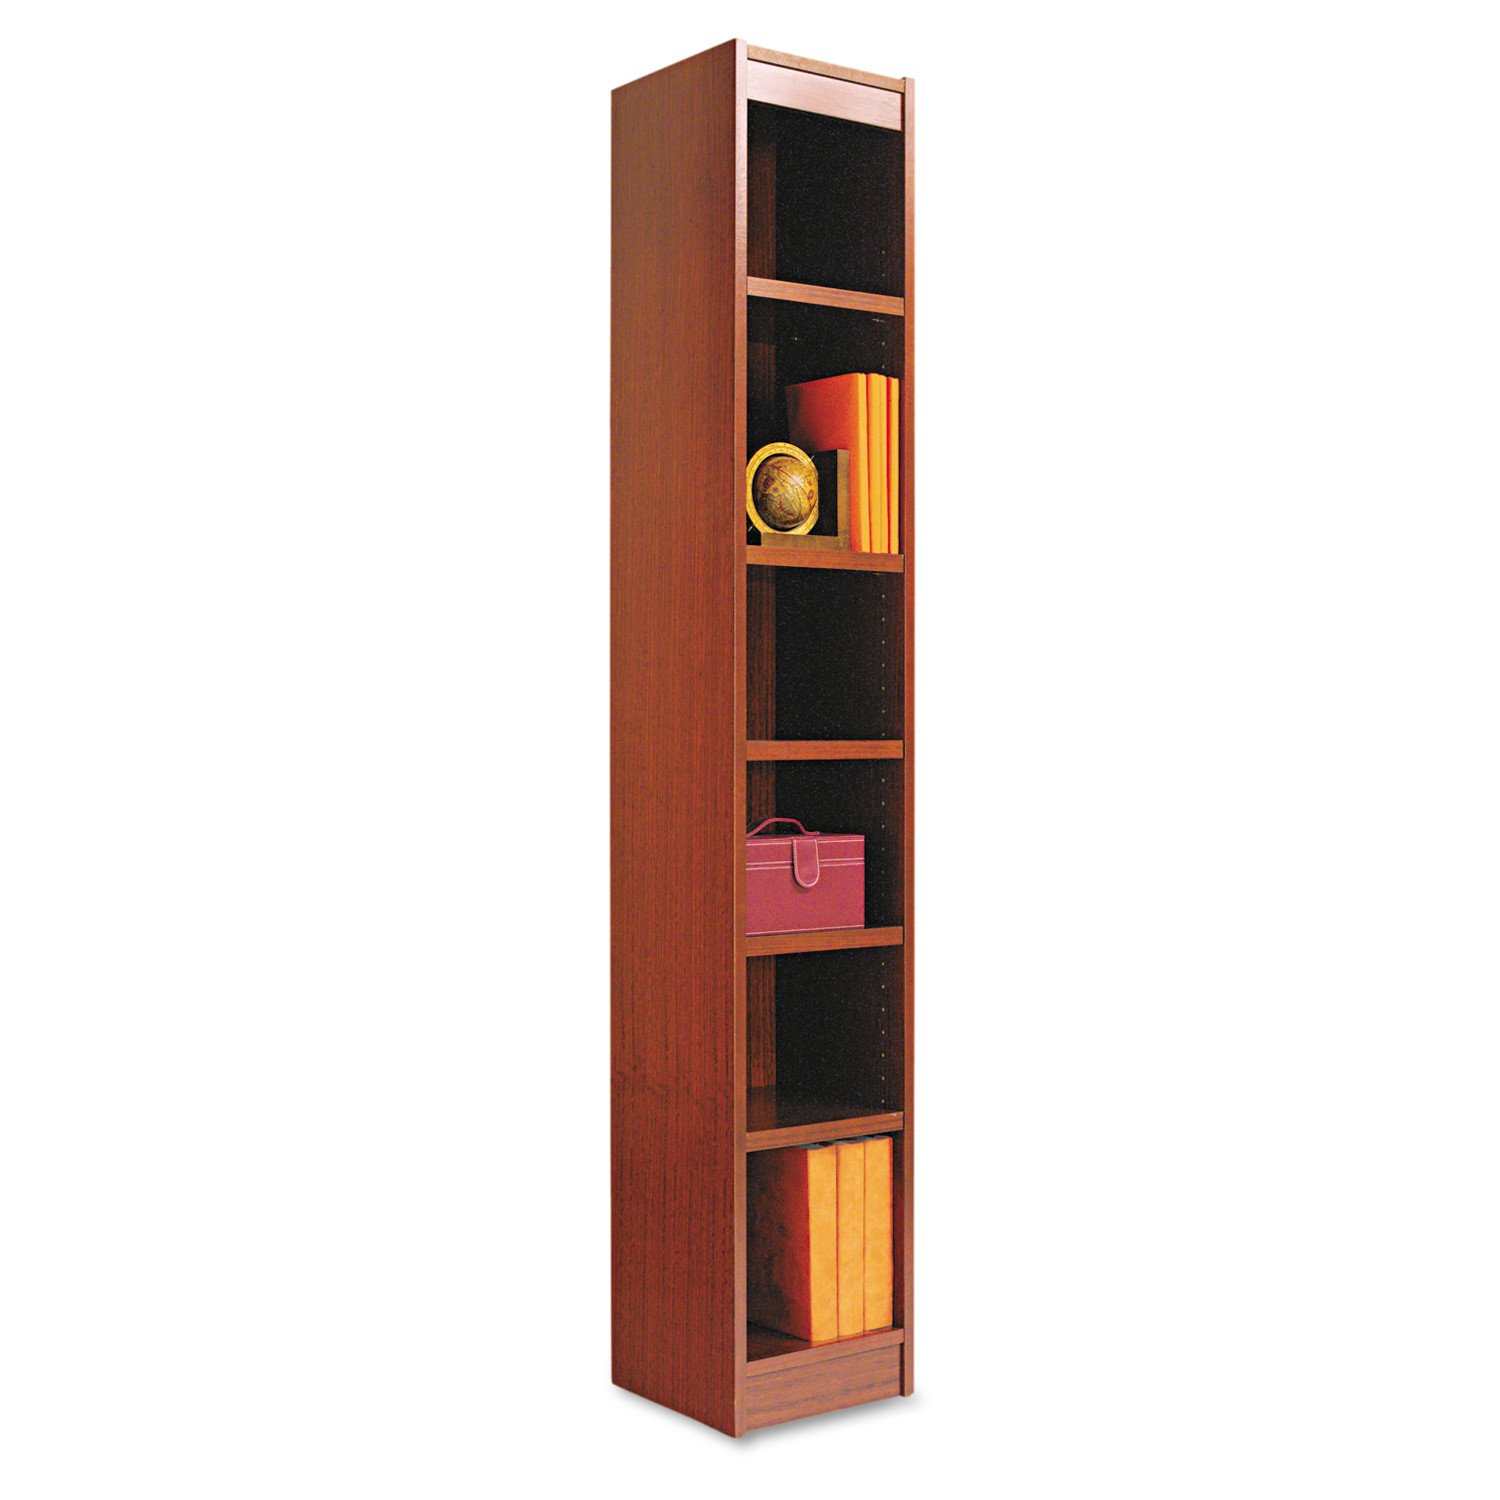 Alera Narrow Profile Bookcase, Wood Veneer, Six-Shelf, 12w x 11-3 4d x 72h, Mahogany by ALERA